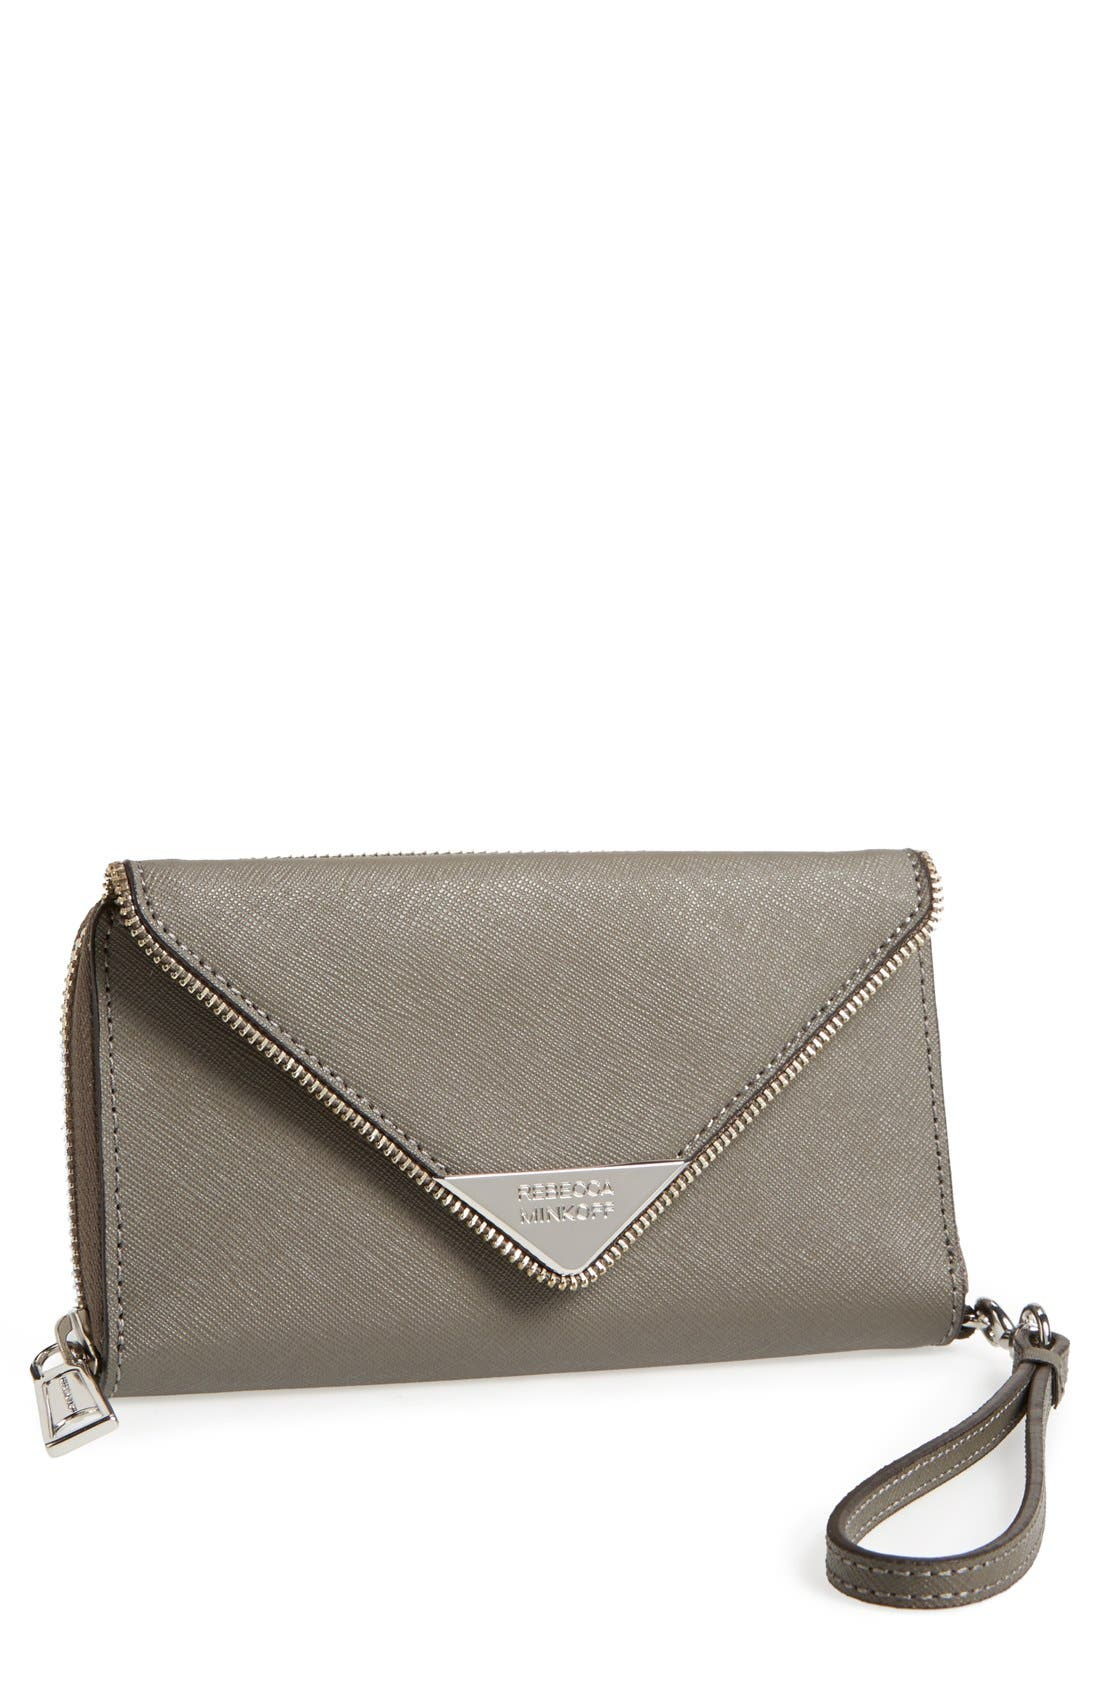 Alternate Image 1 Selected - Rebecca Minkoff 'Zoey' Tech Wristlet